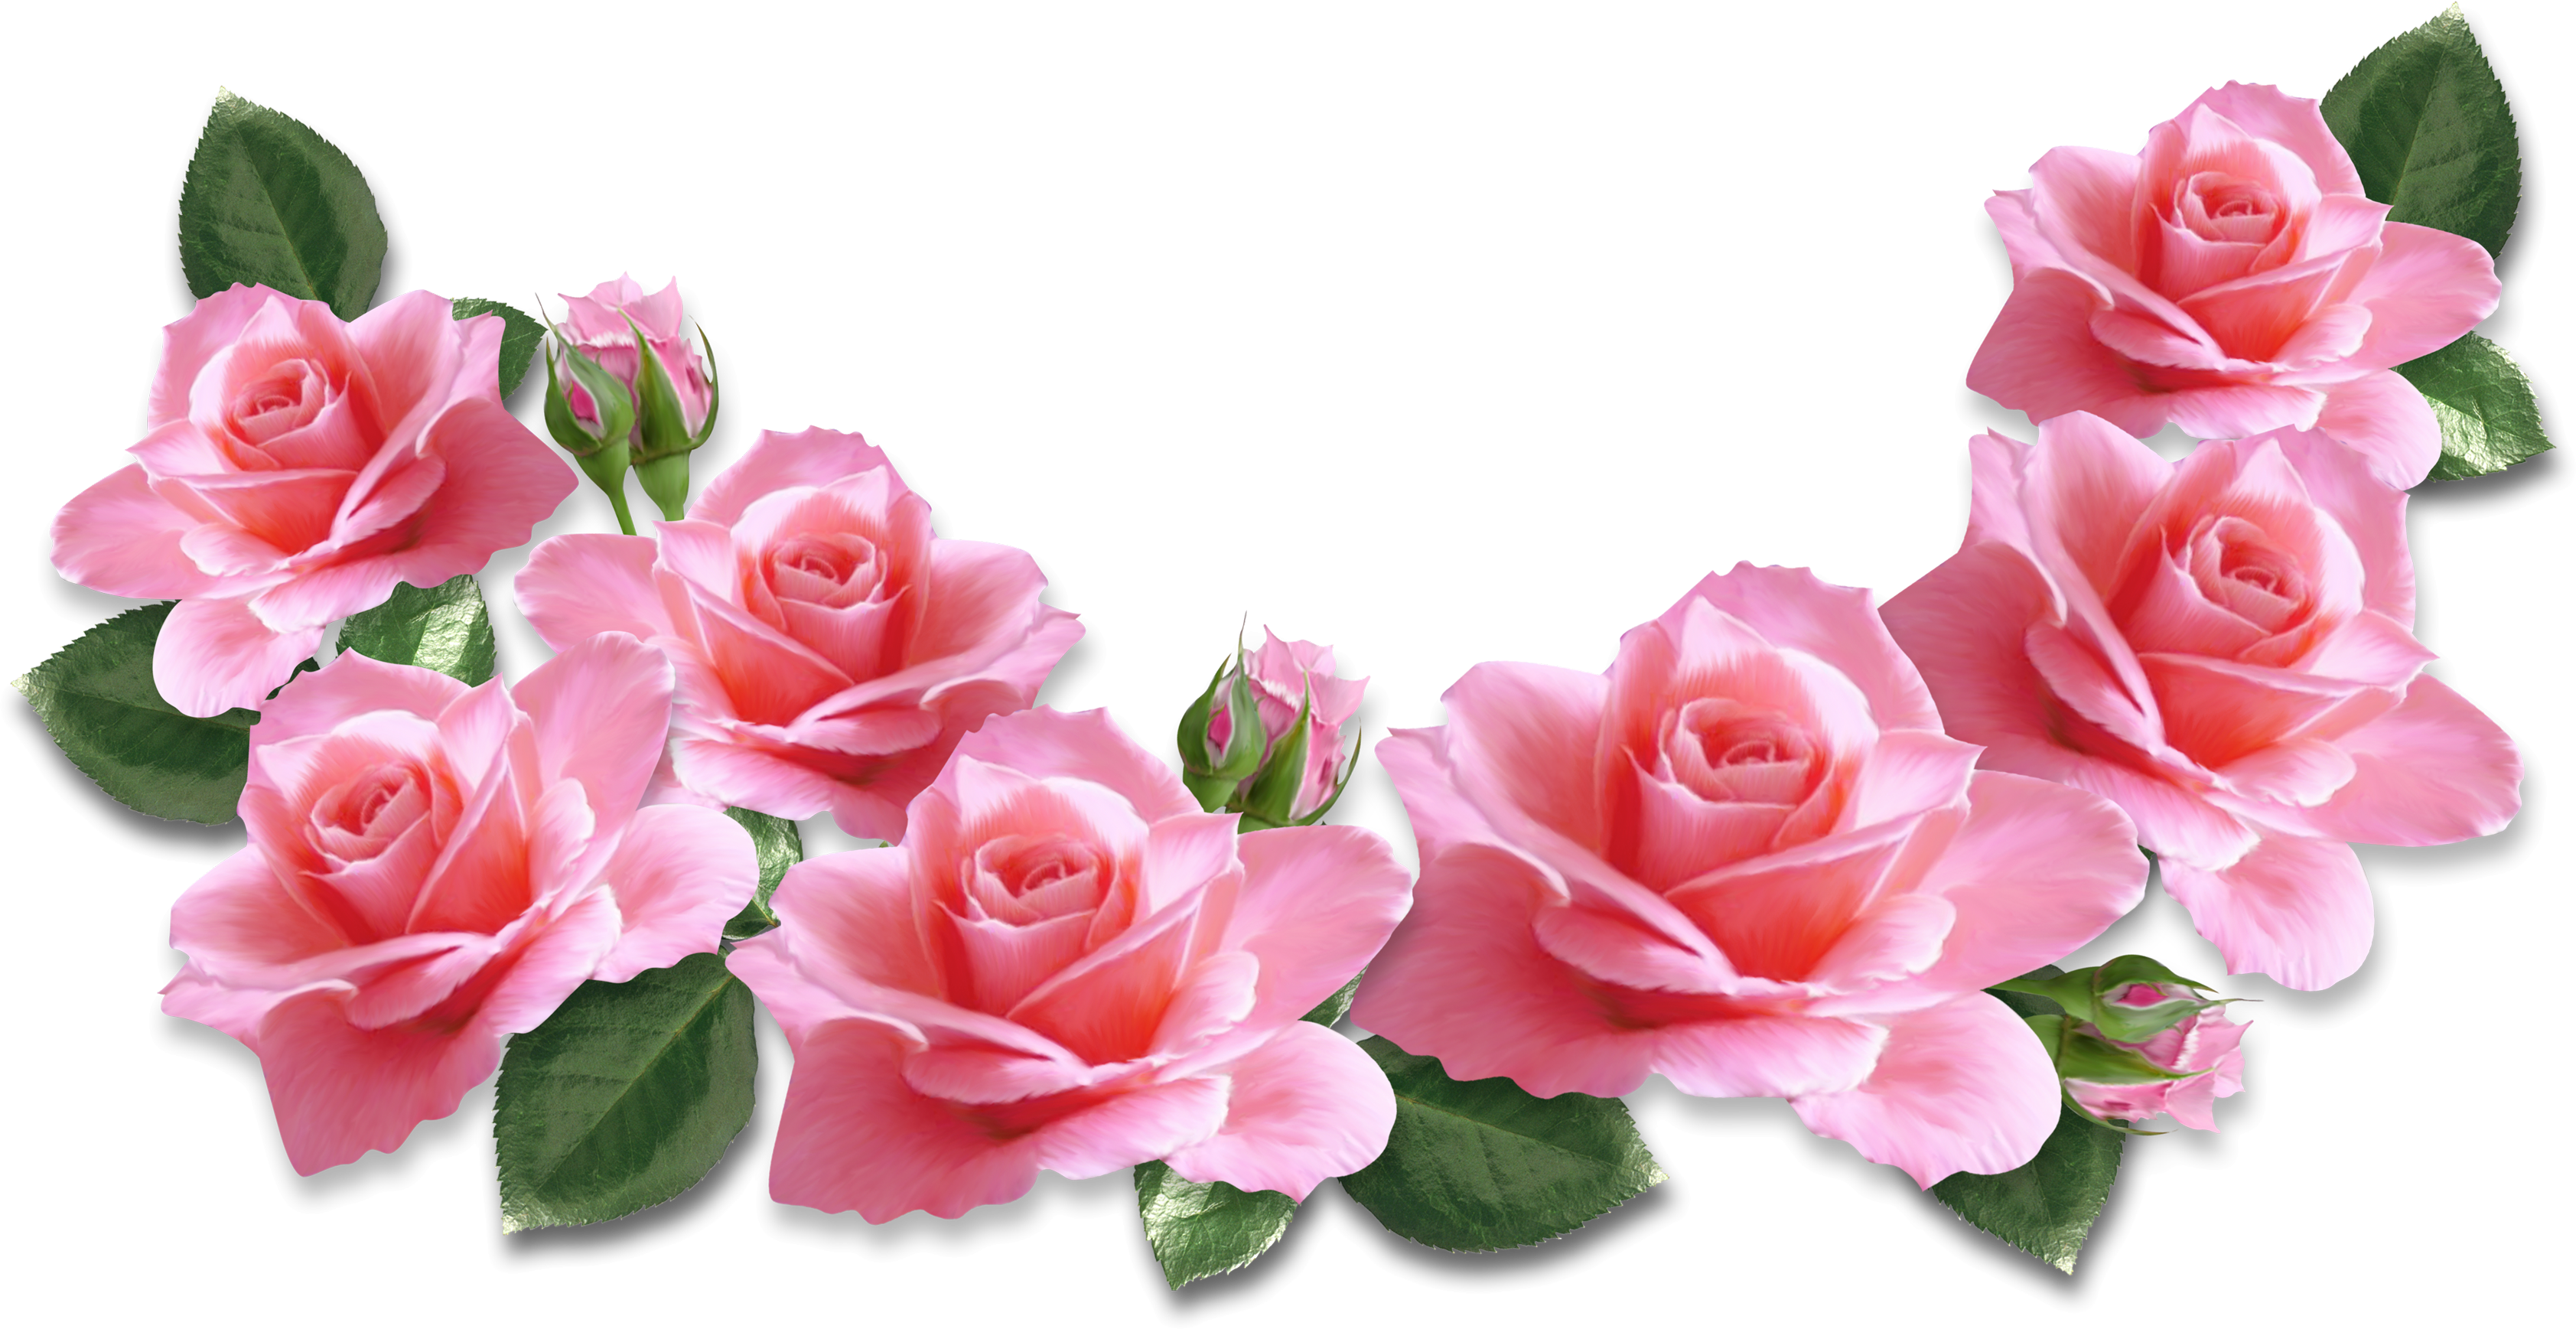 Rose clipart banner.  collection of pink